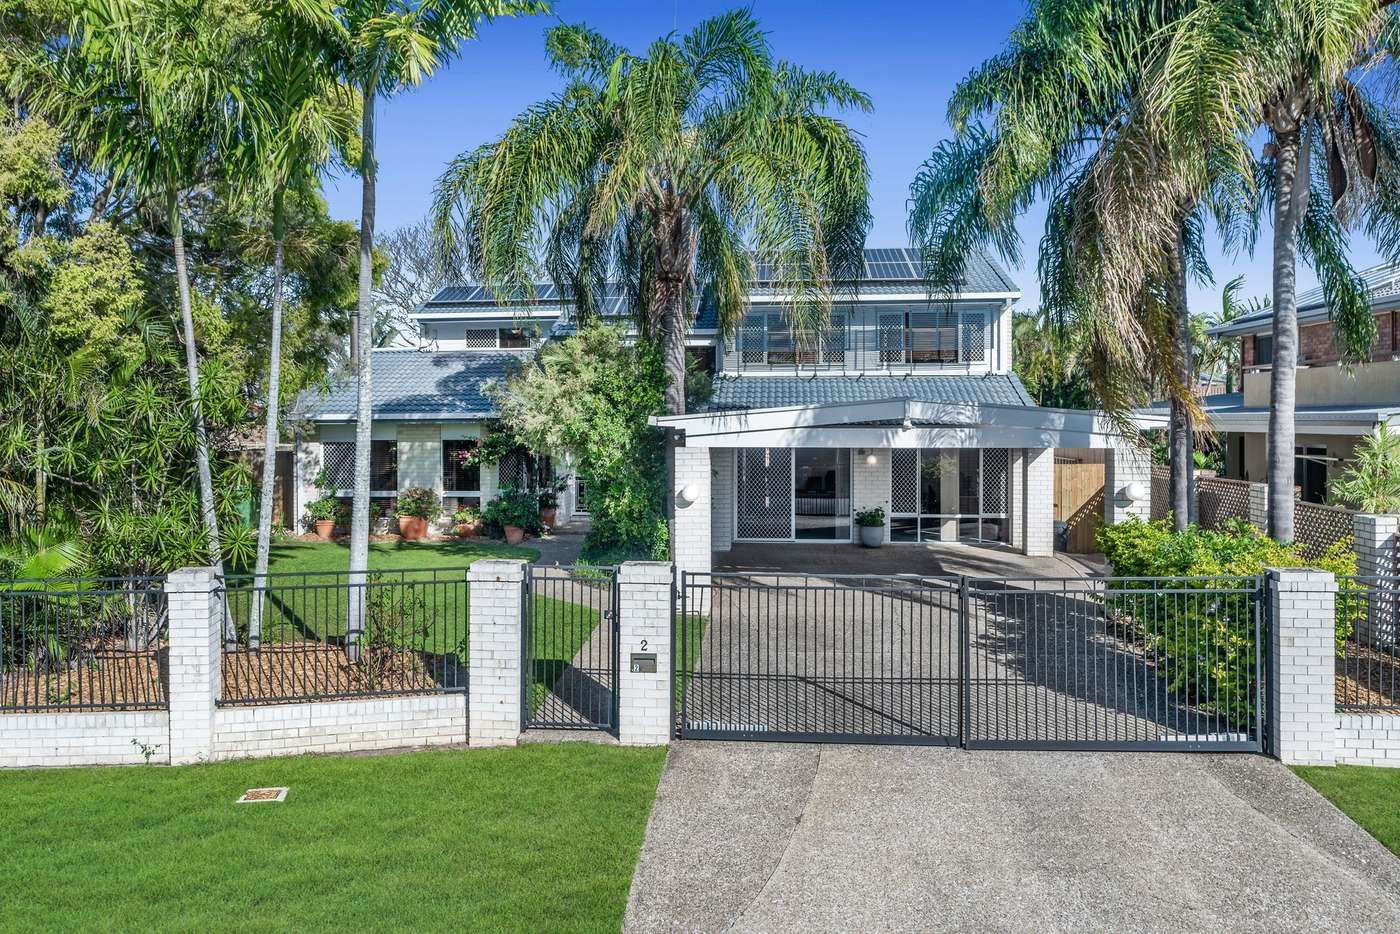 Main view of Homely house listing, 2 Wahoo Court, Birkdale QLD 4159